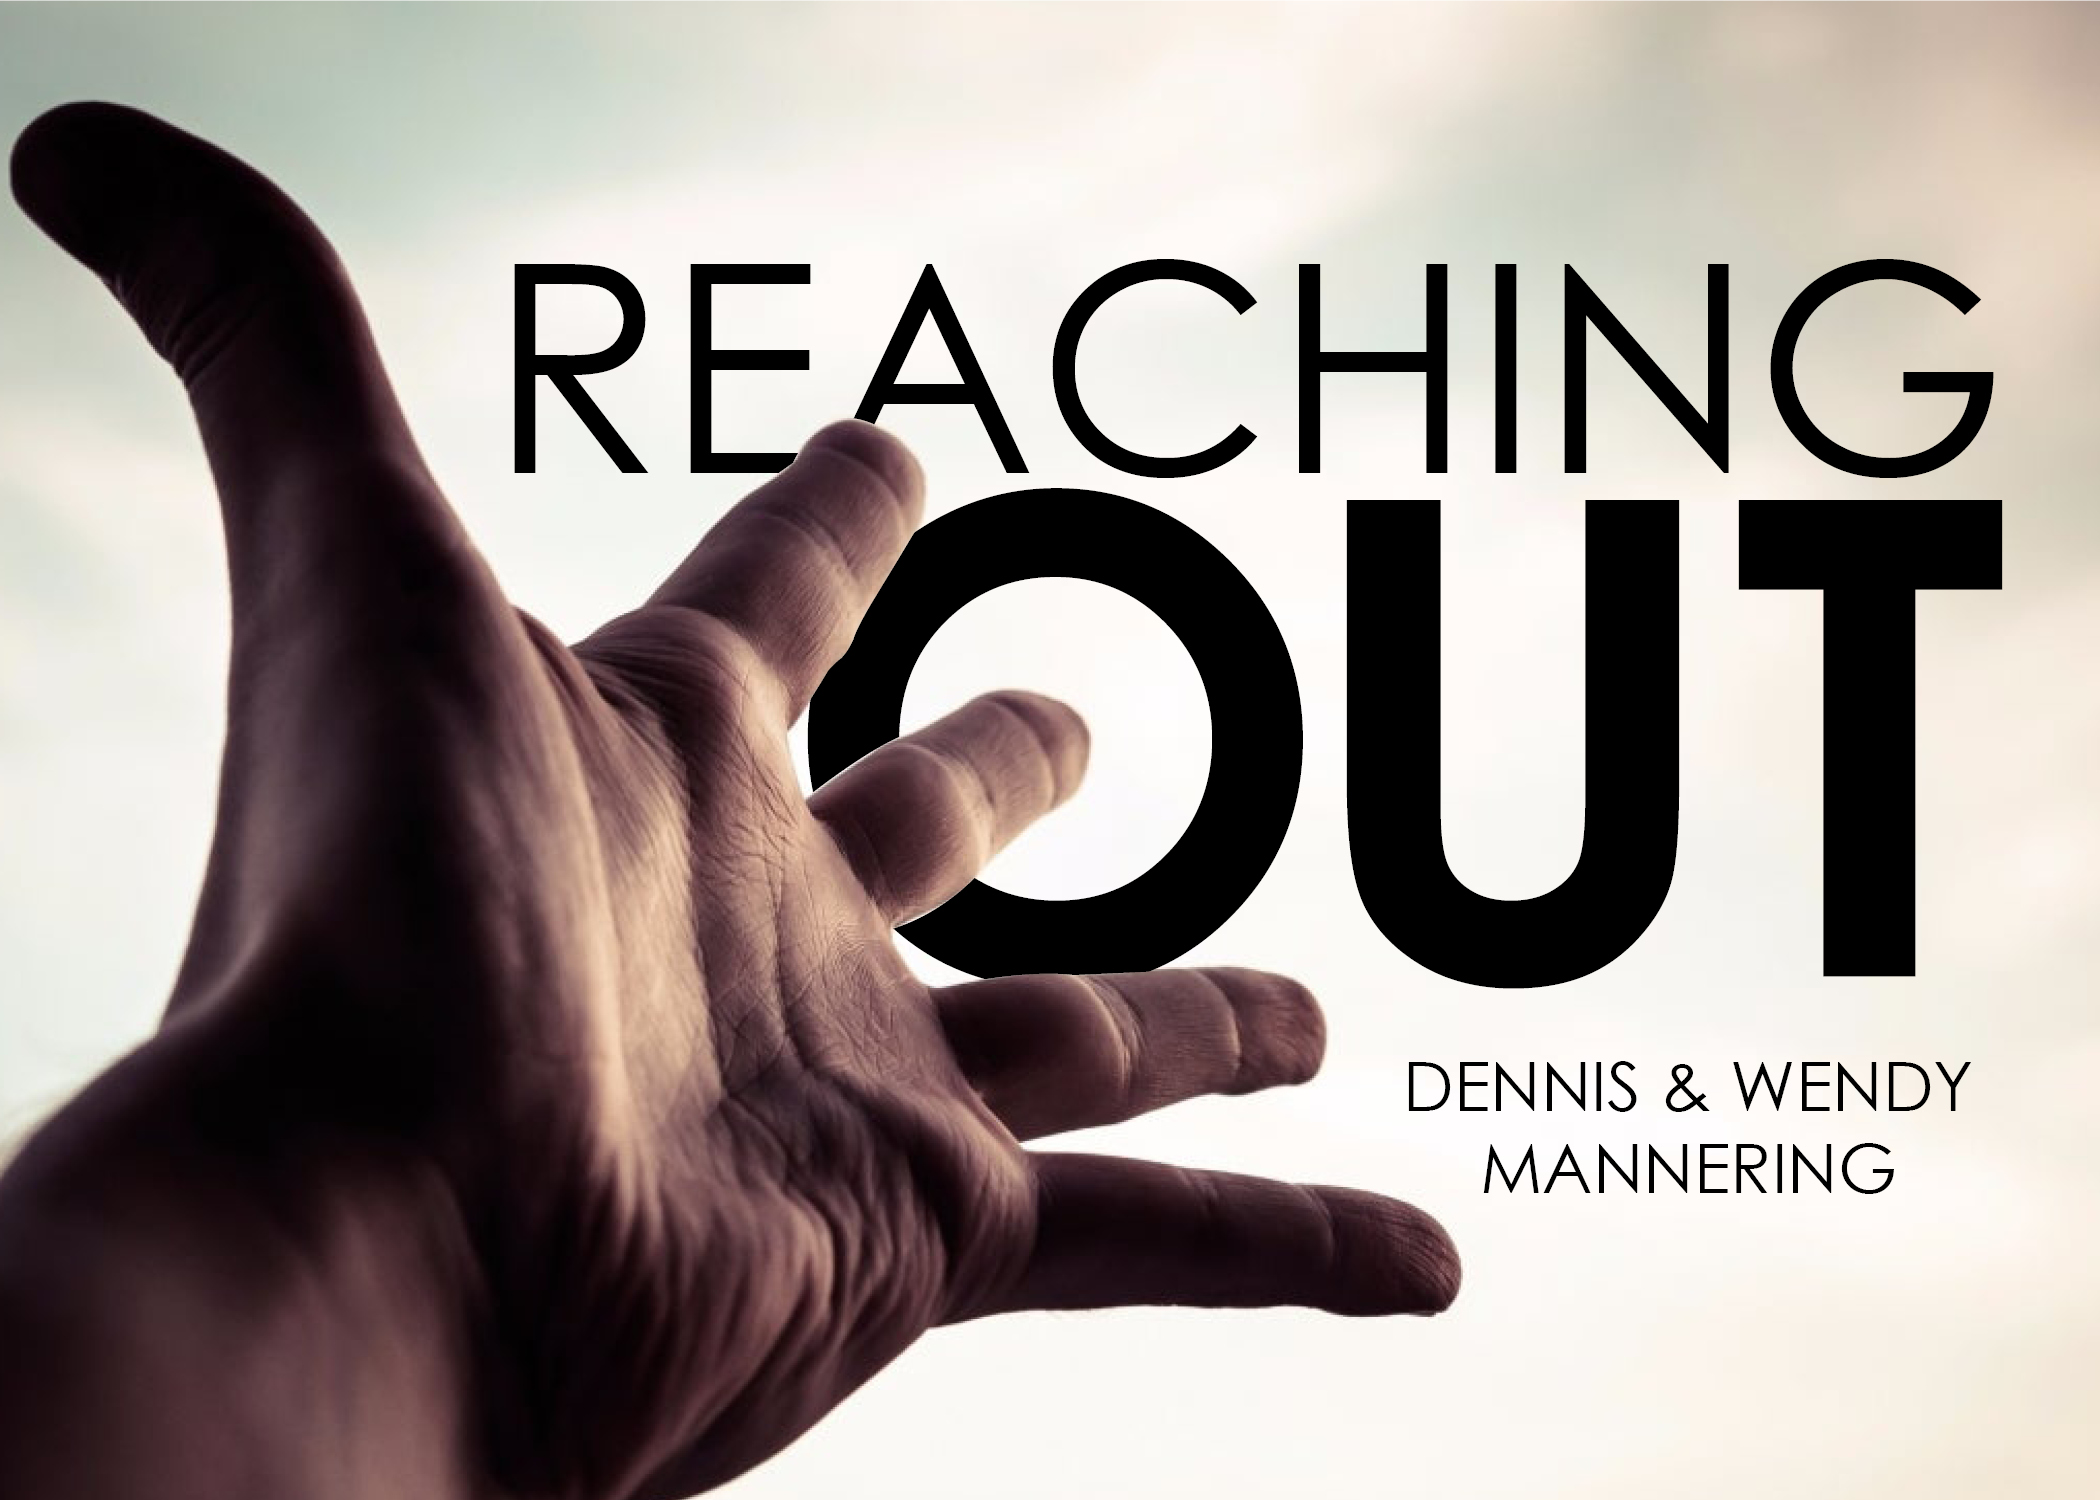 Reaching Out Graphic.jpg